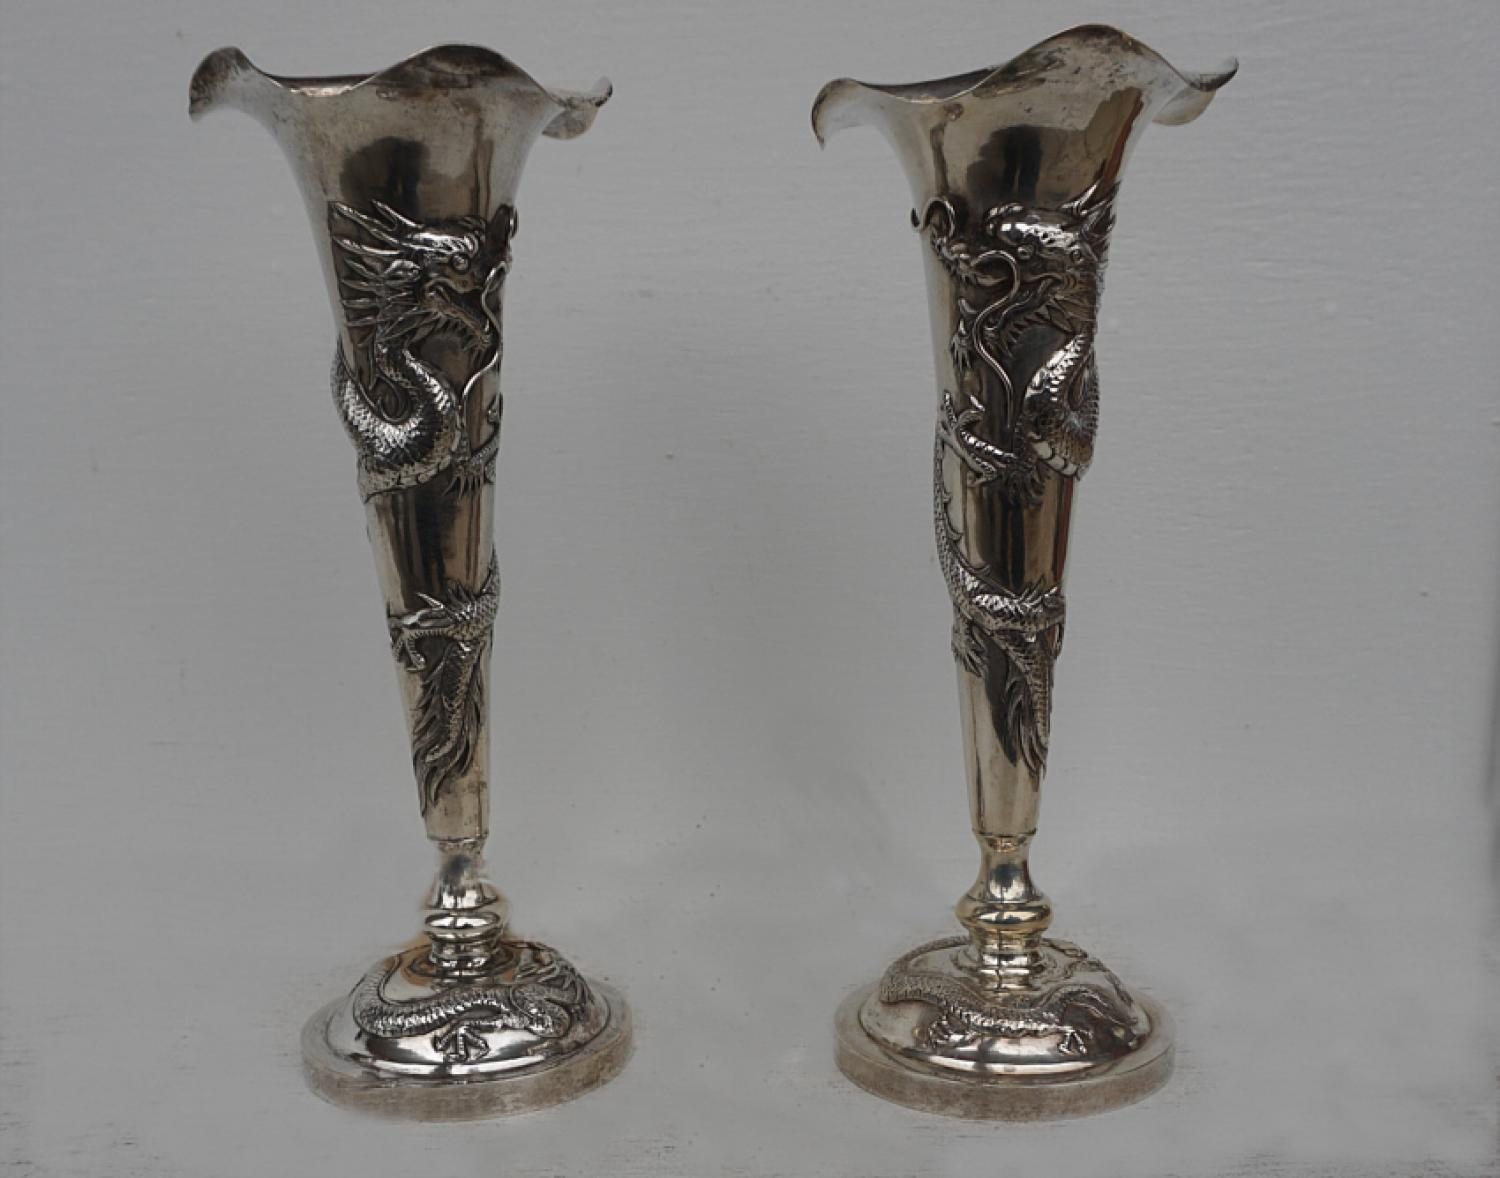 Chinese Export sterling silver candlesticks c1930